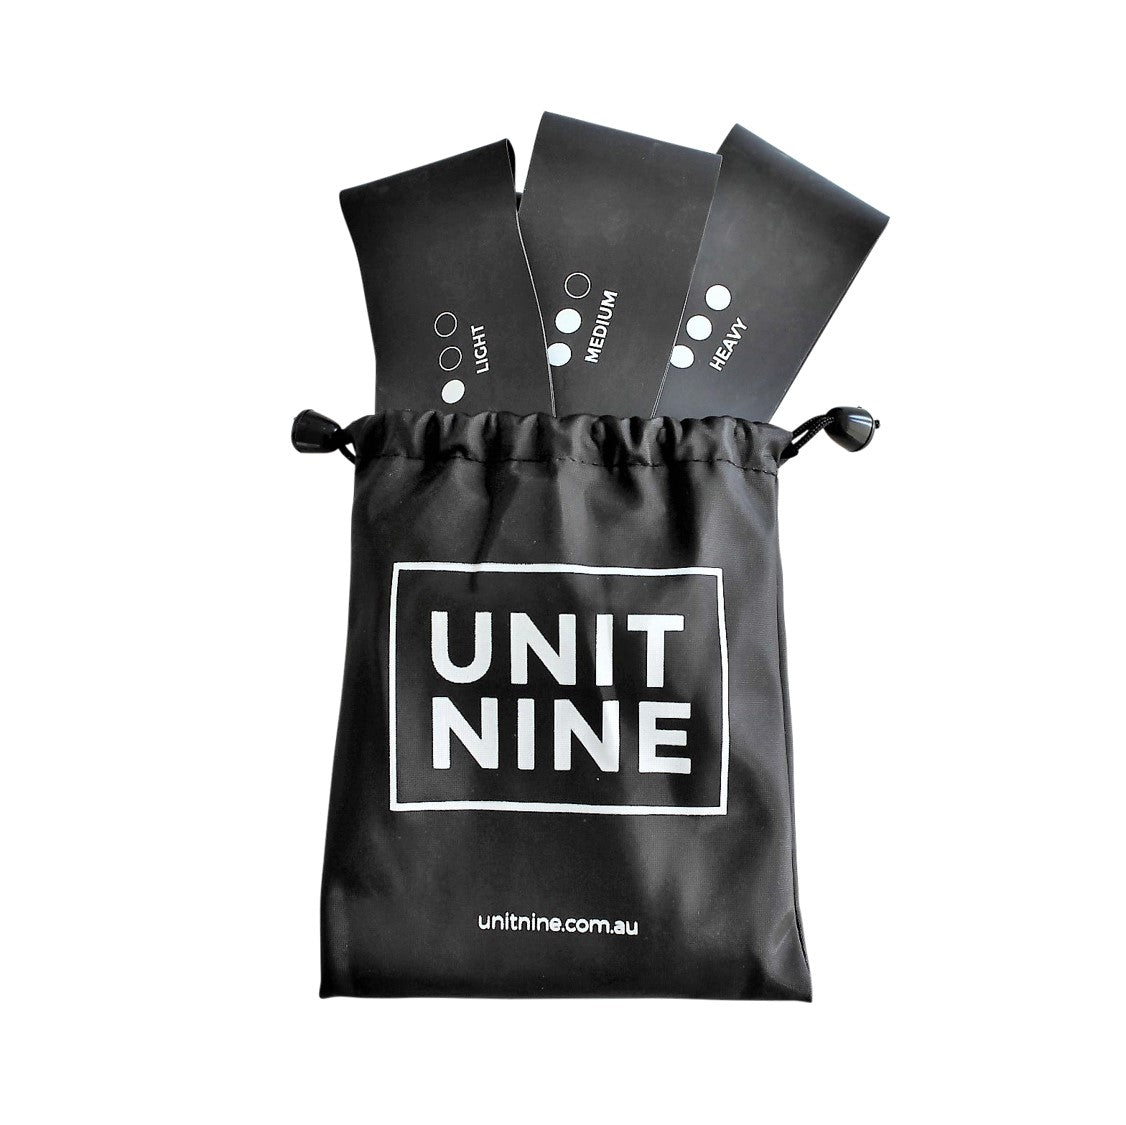 UNIT NINE Mini Resistance Bands 2